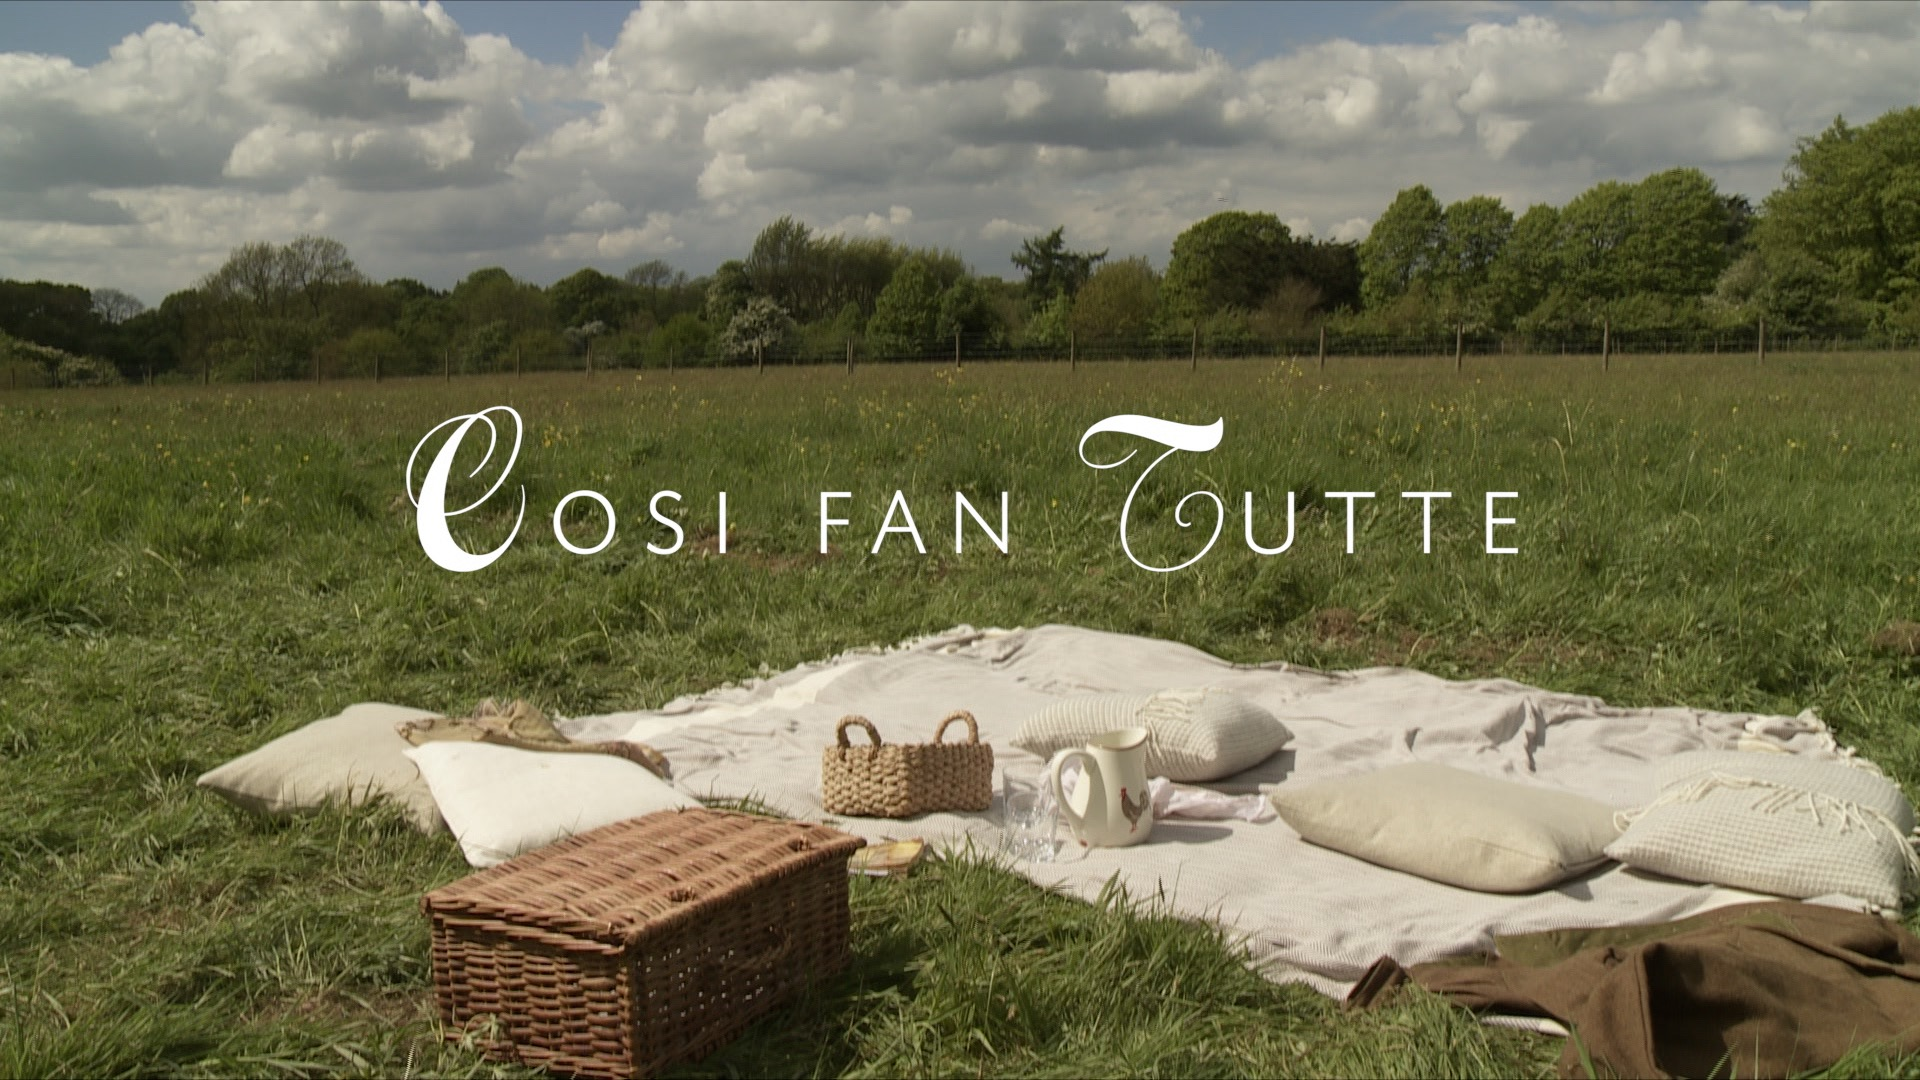 Opera Holloway  - Cosi Fan Tutte Trailer